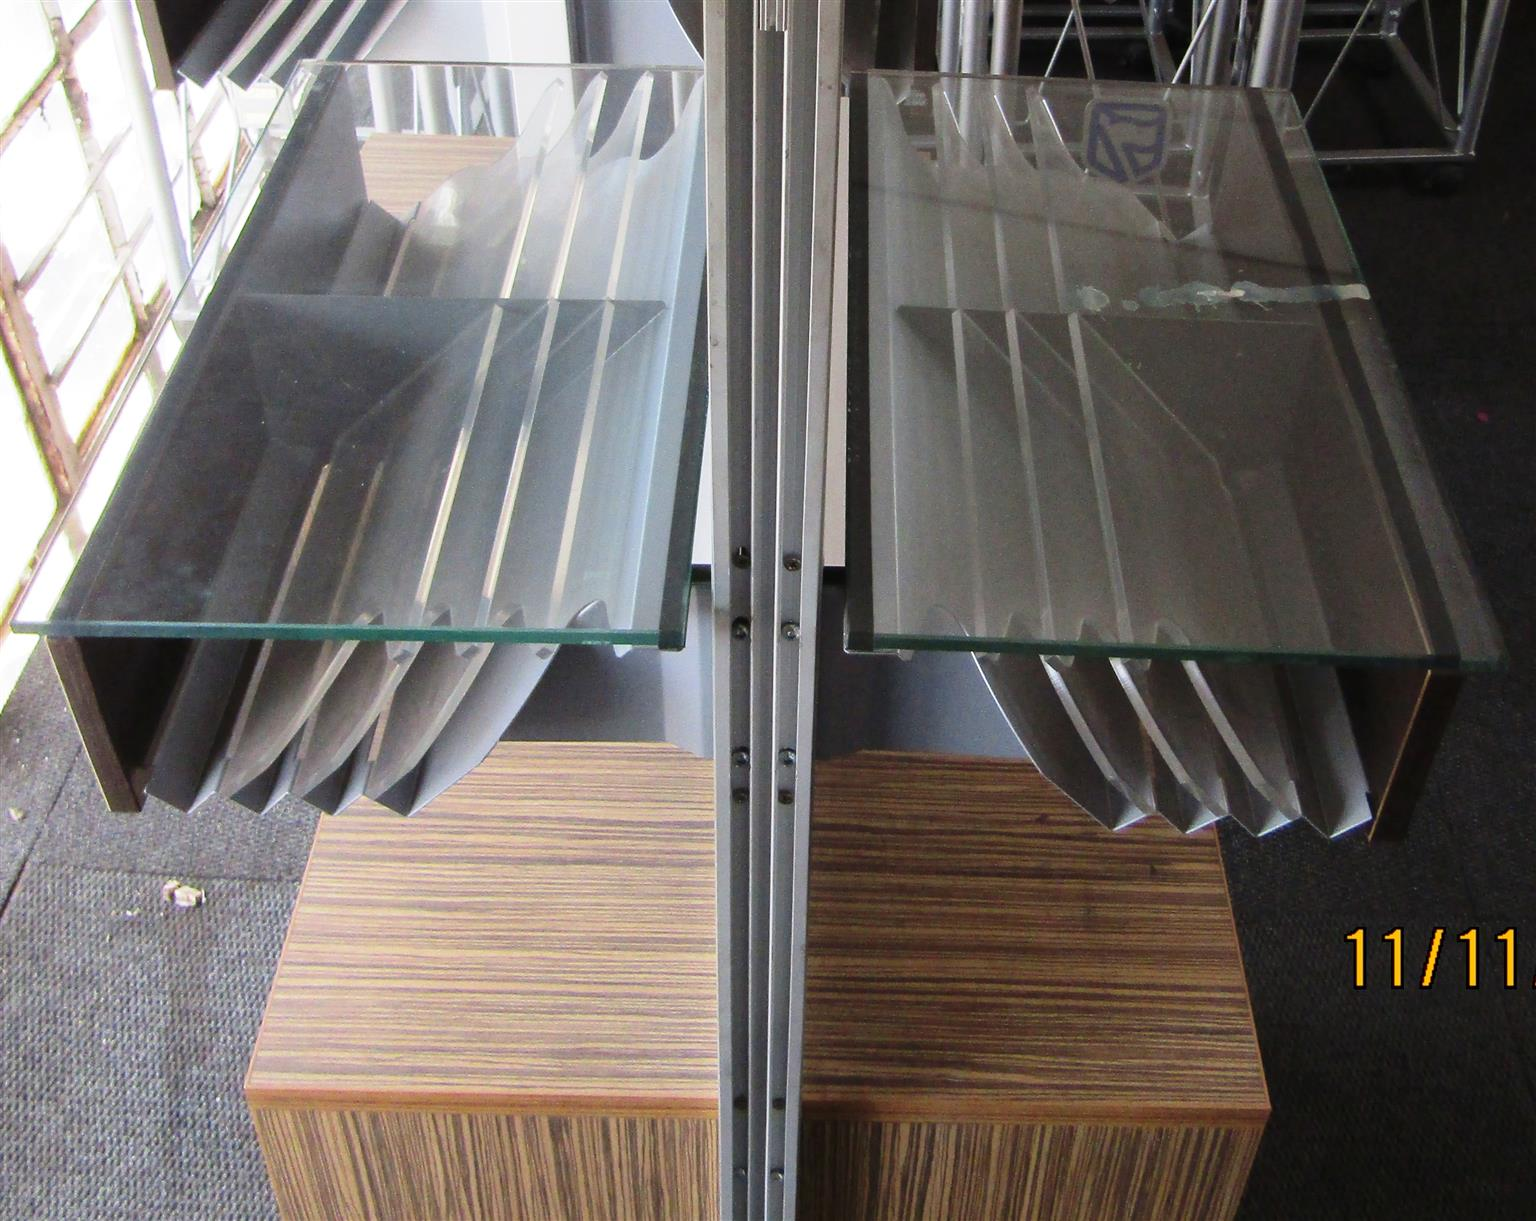 Double Sided Form/Pamphlet/Display Stand